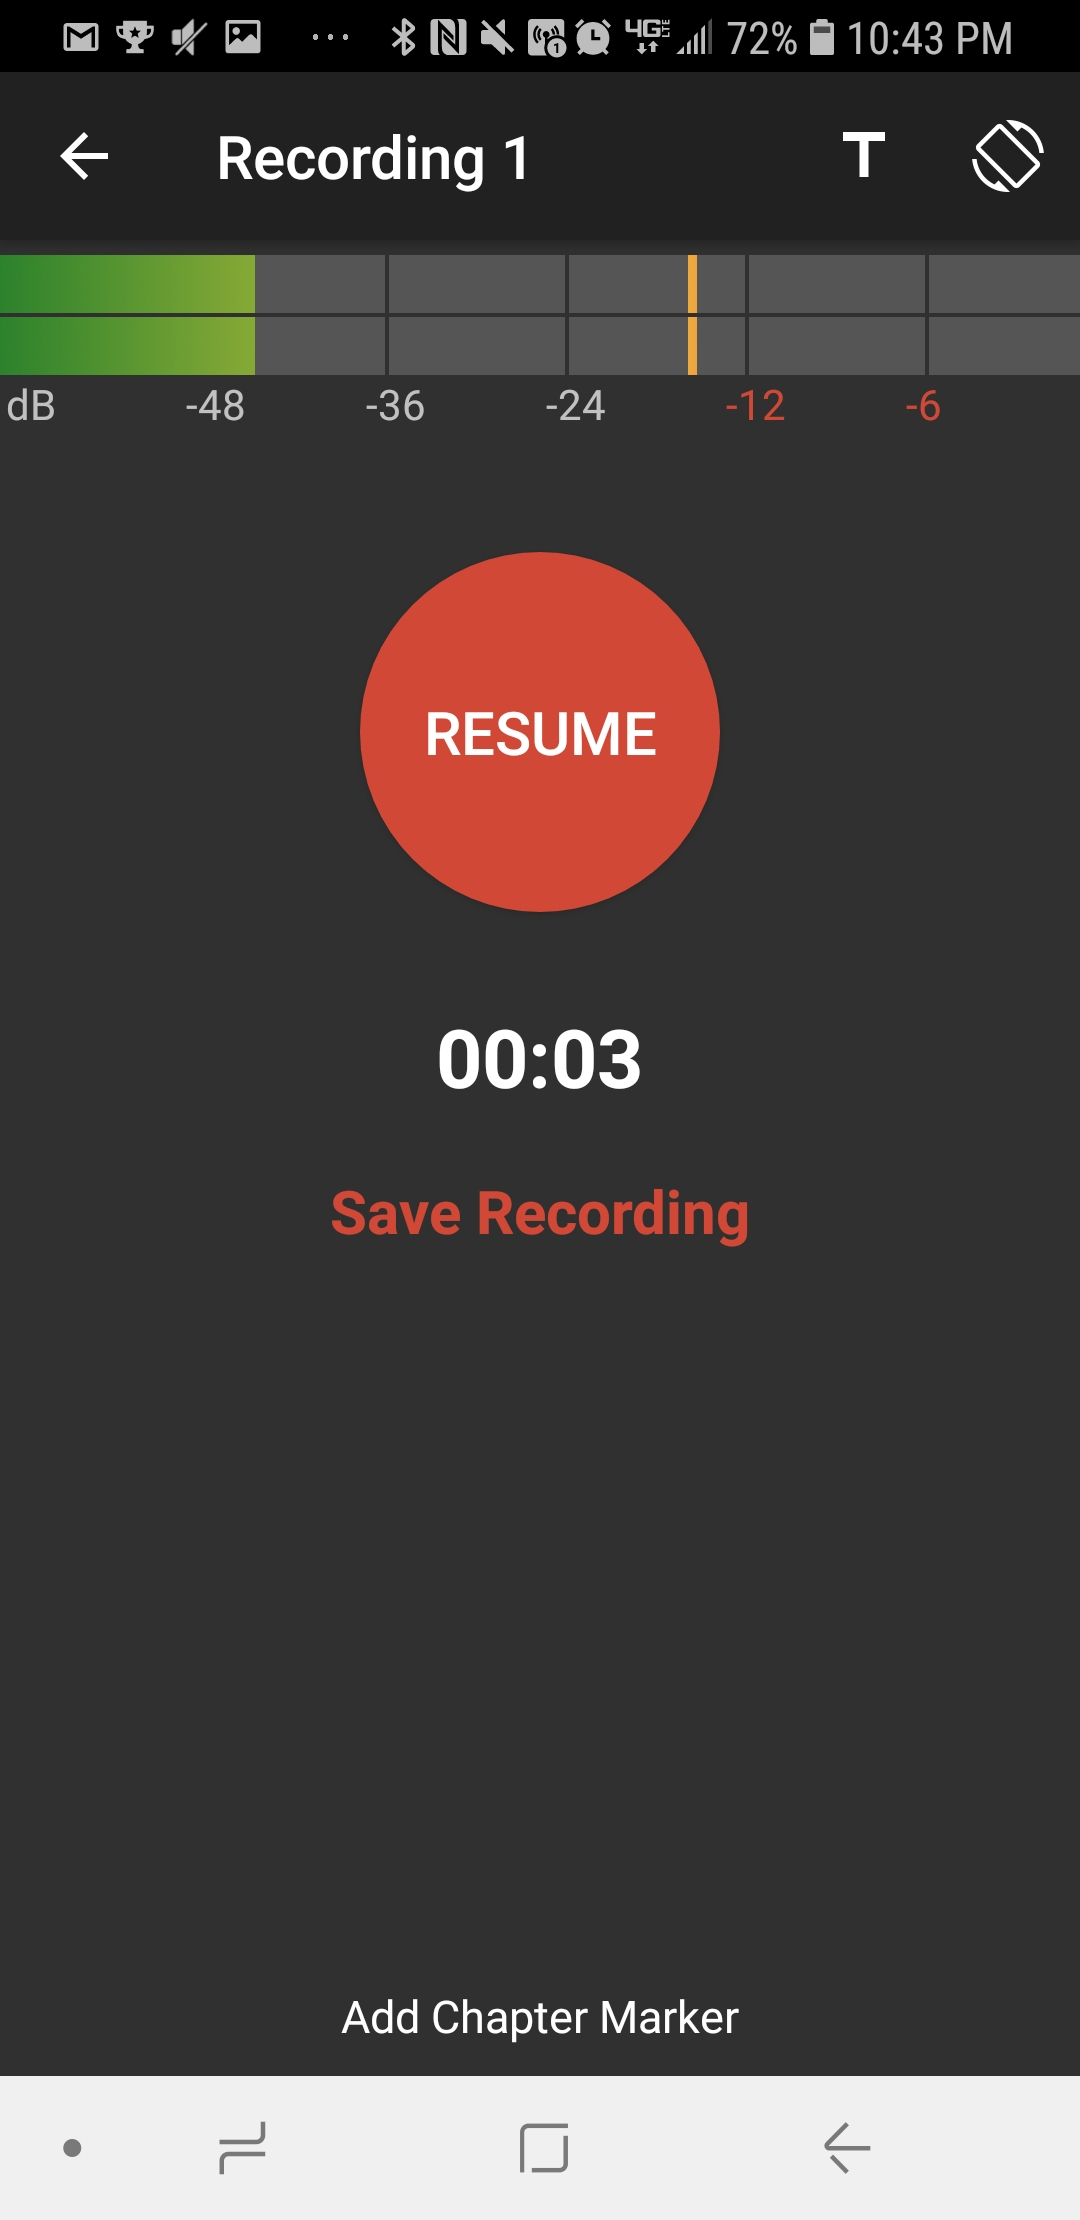 Stop Recording and Save